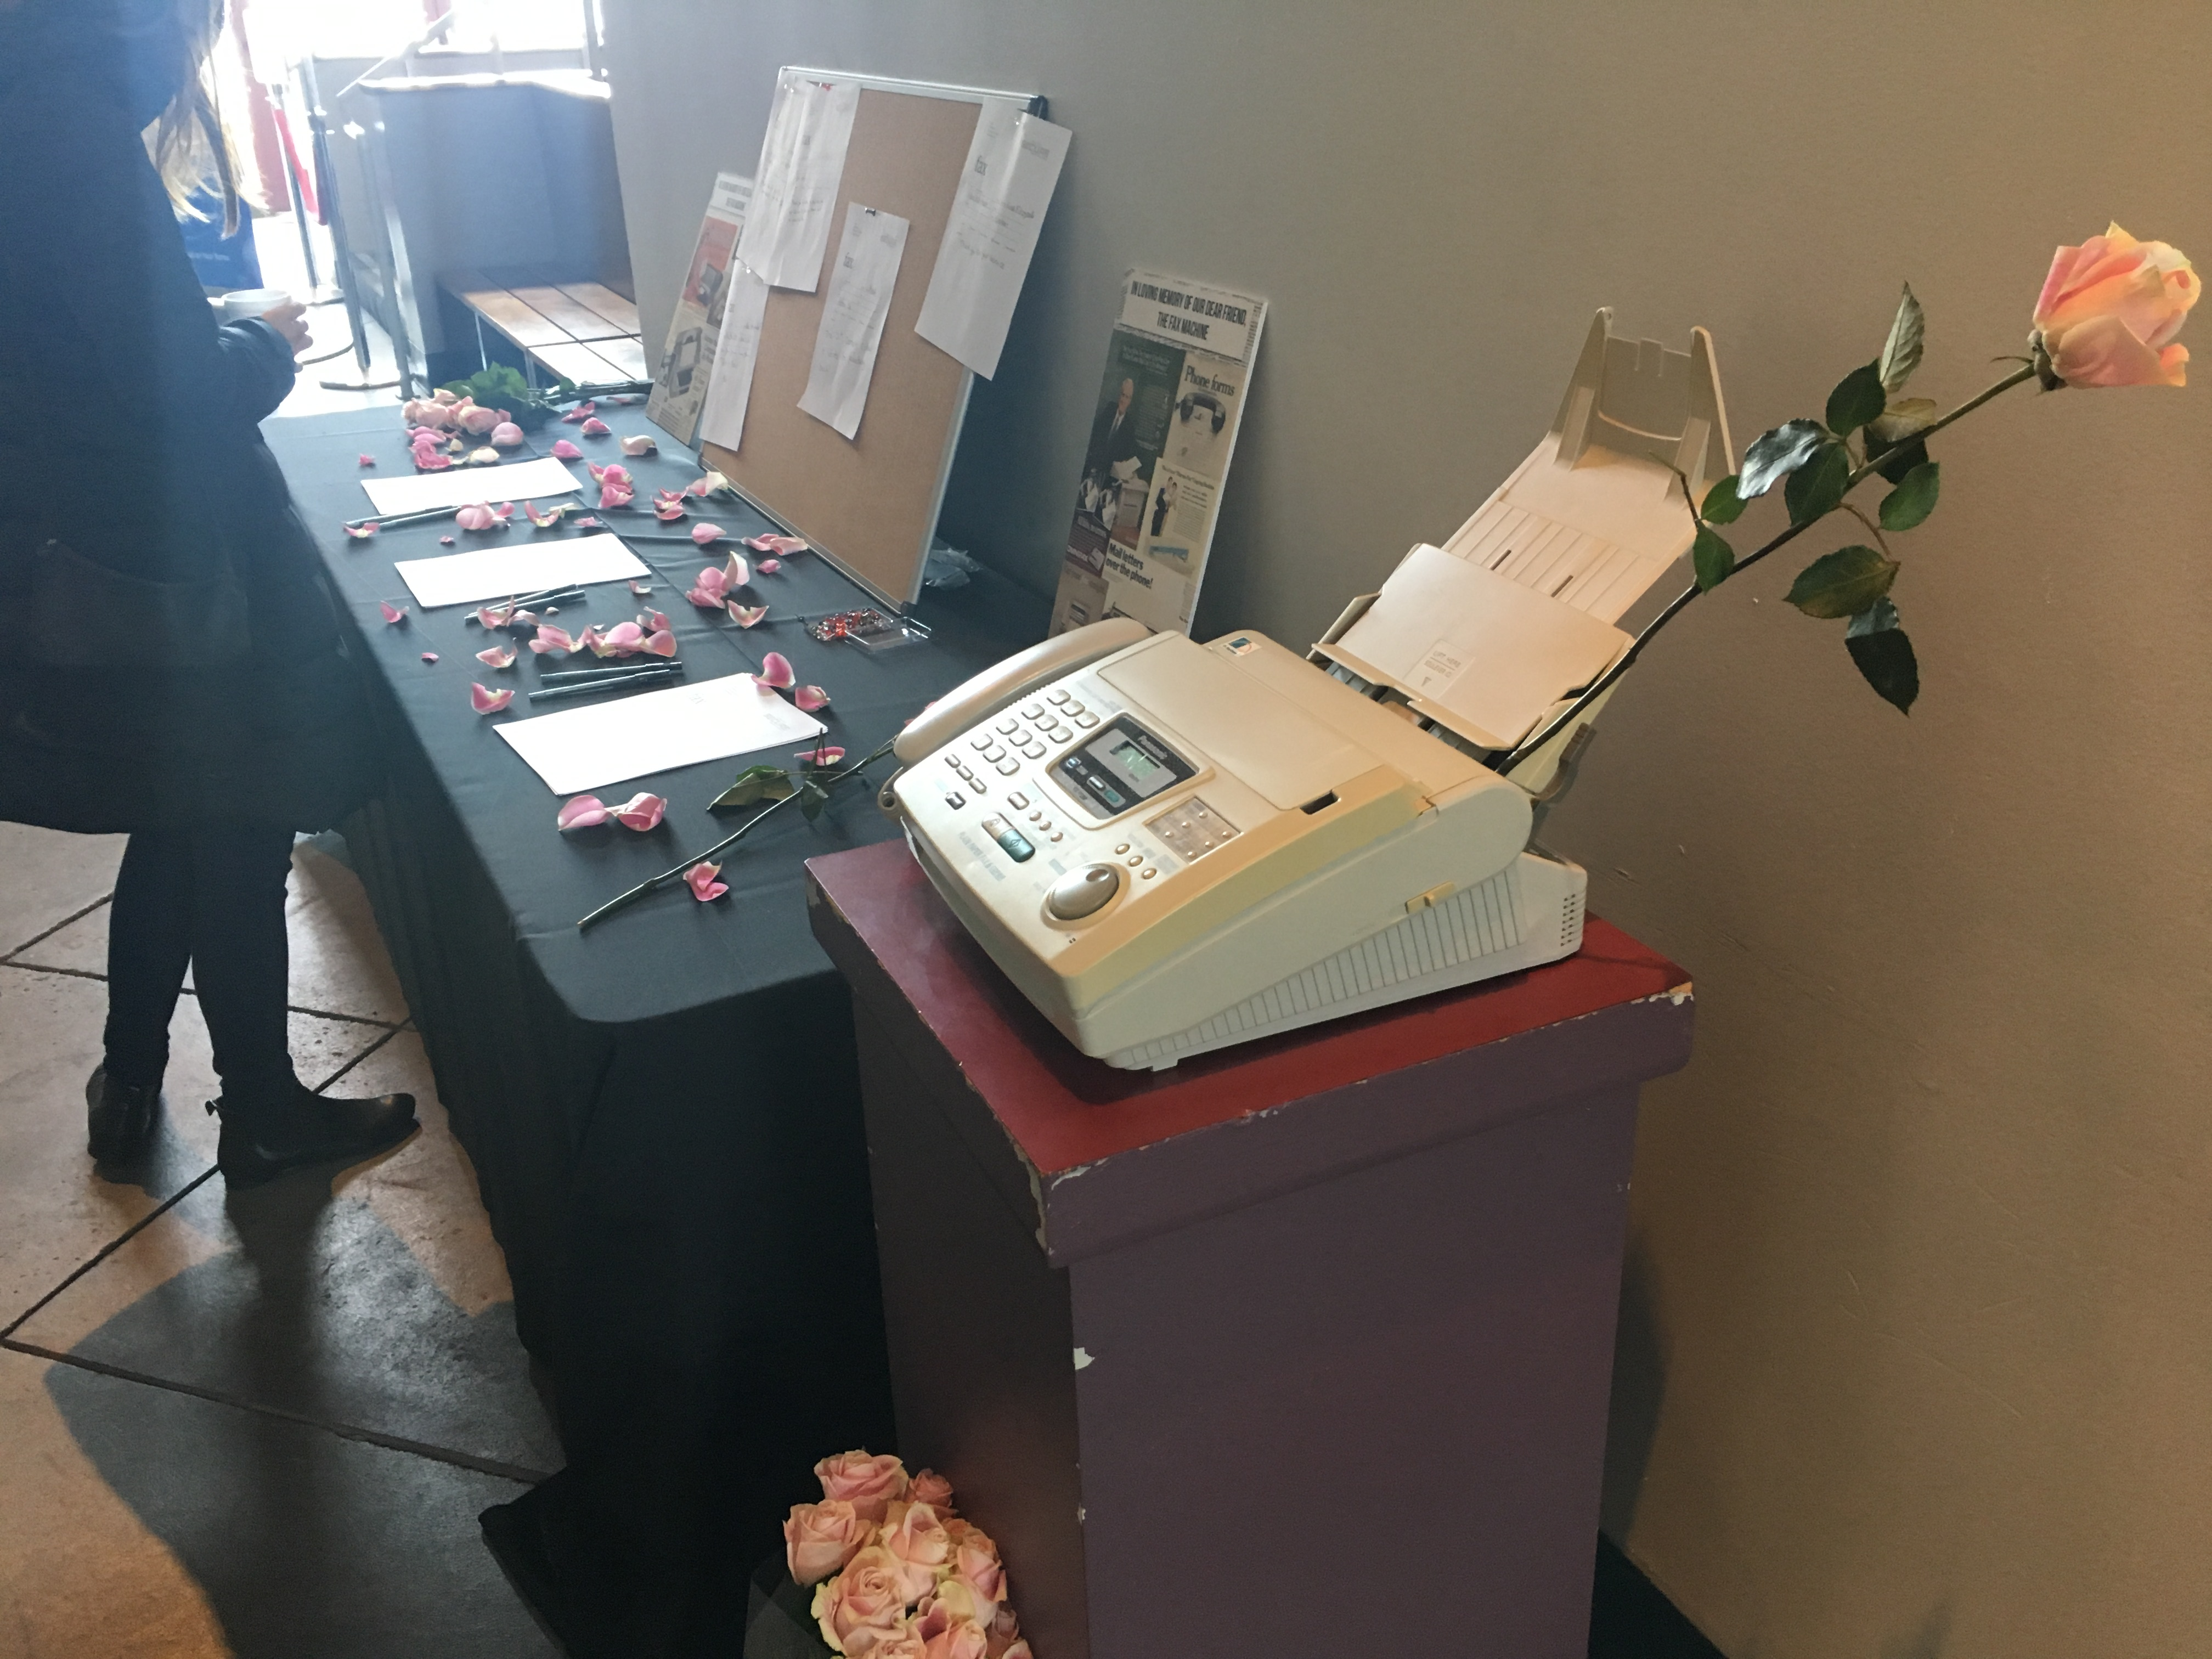 Rememberance Board - A Wake for the Fax Machine - Paubox SECURE Conference